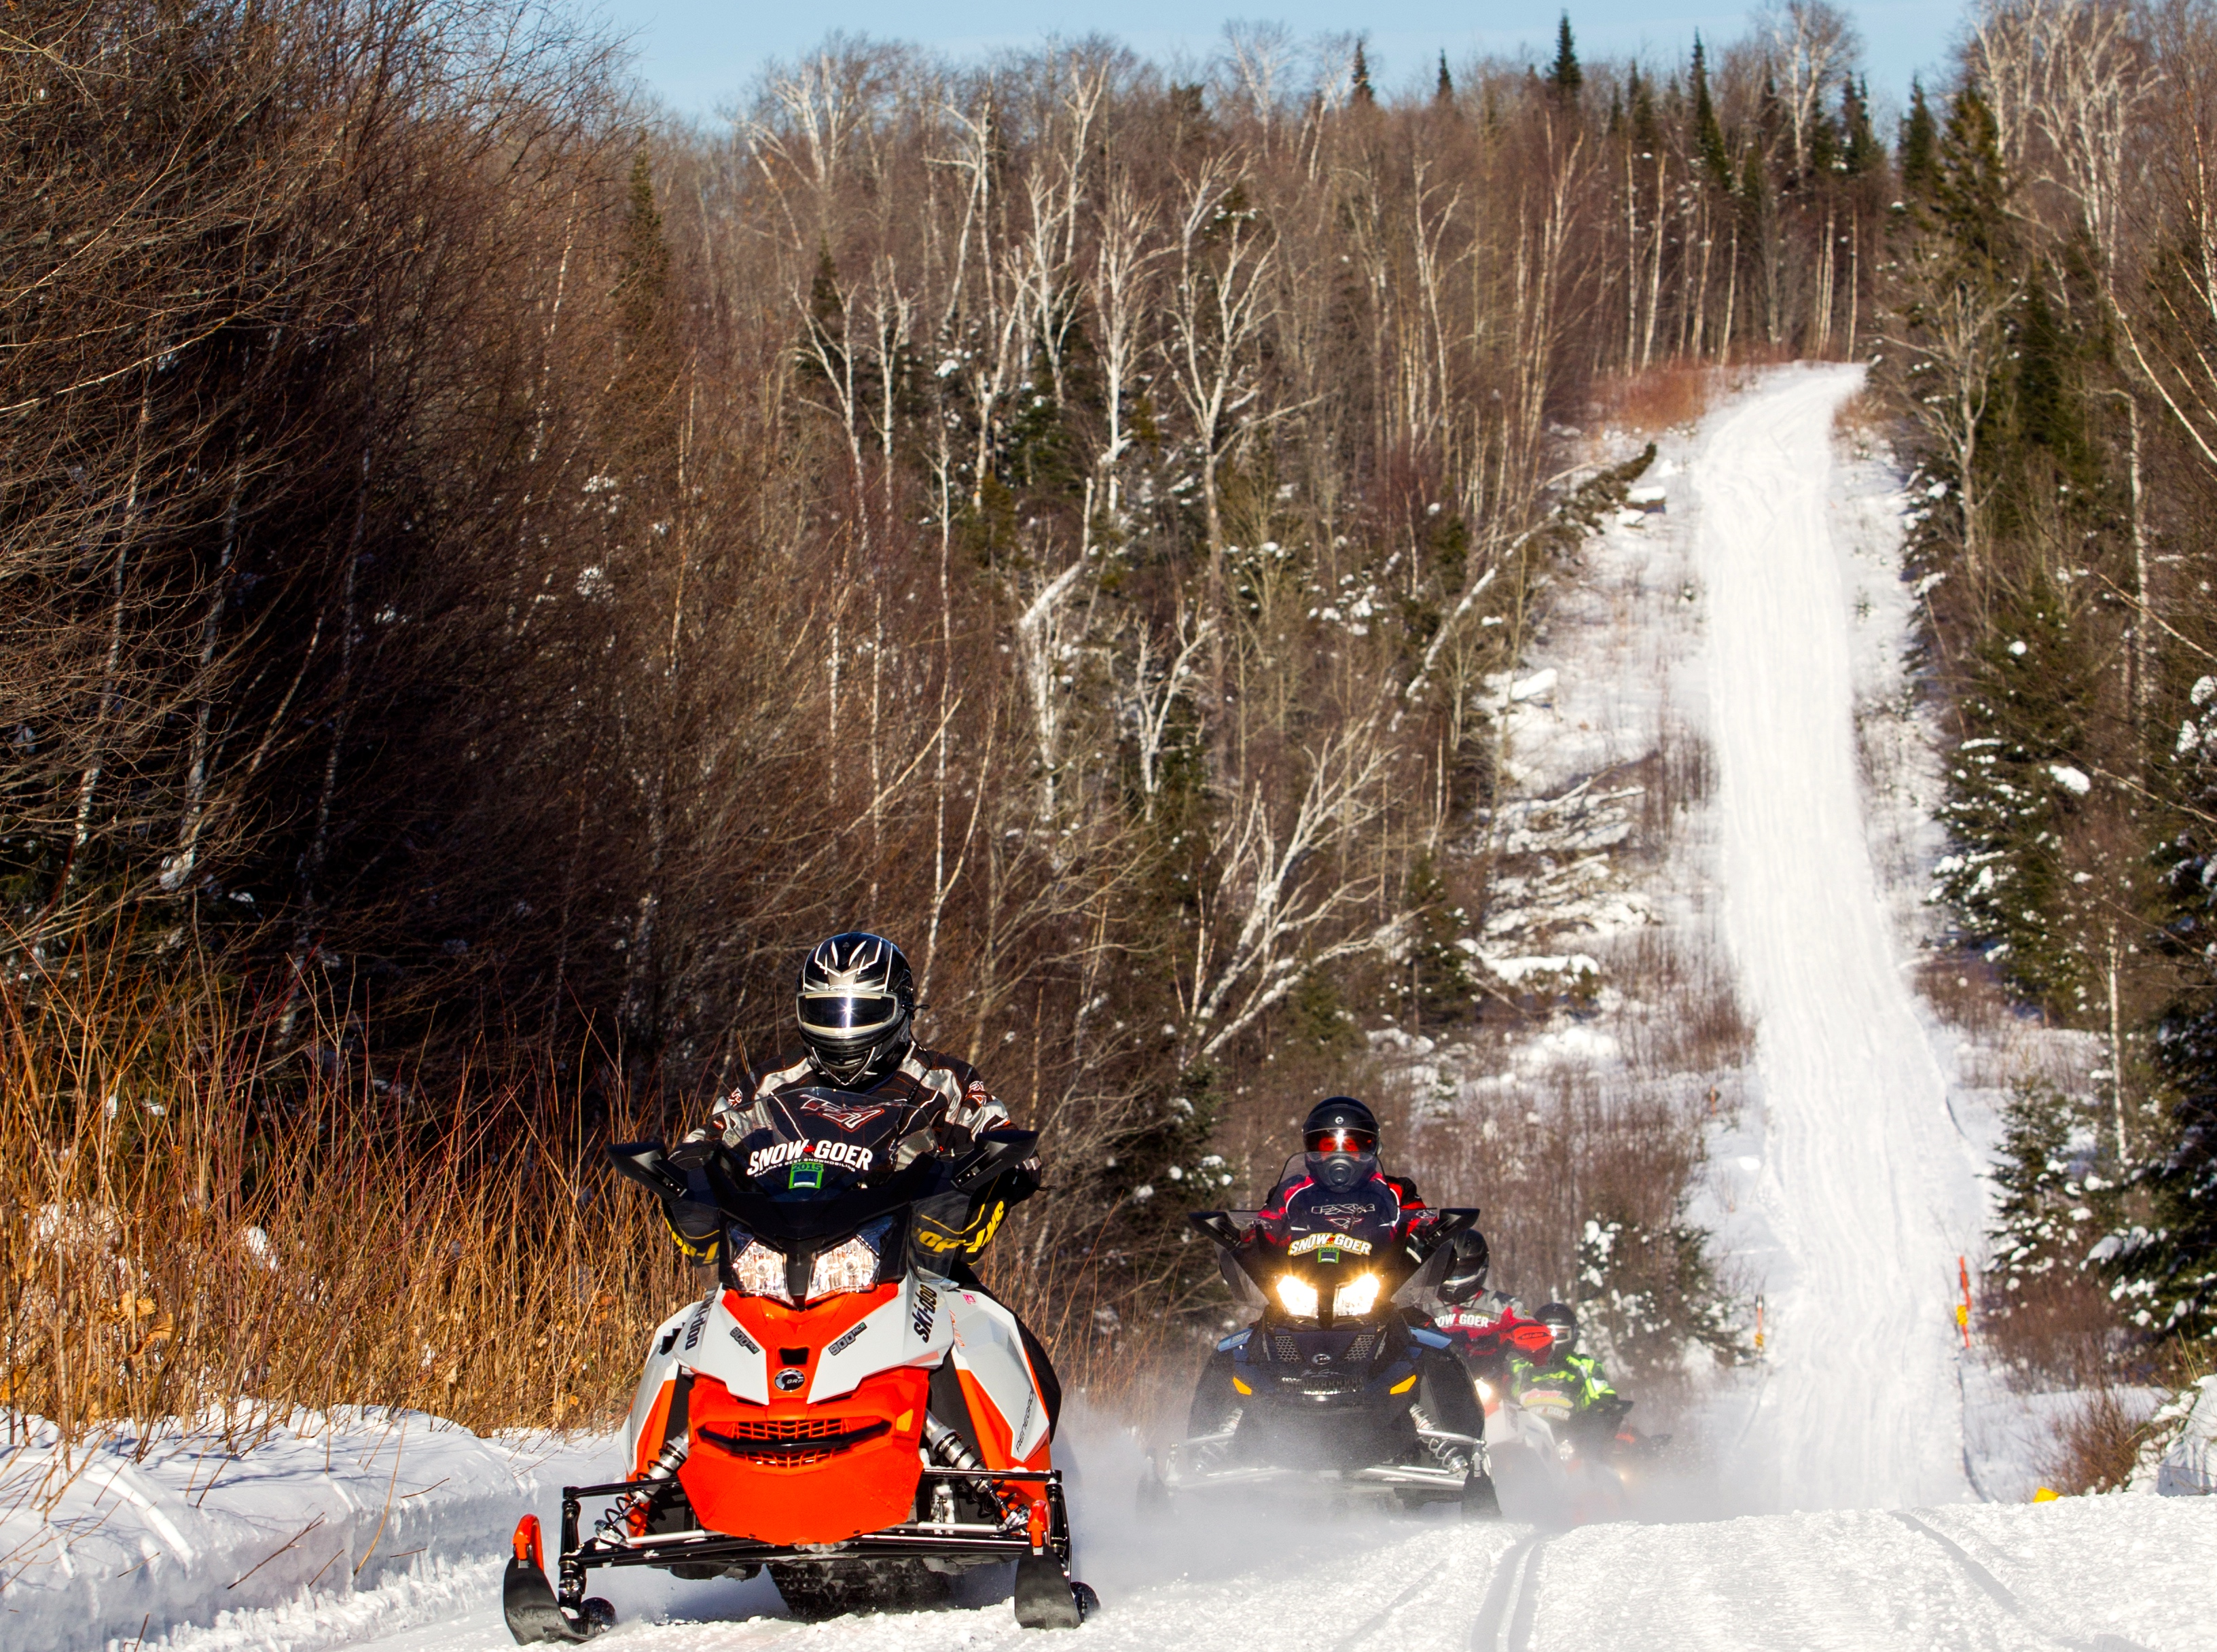 Check Out the Latest Trail Updates to Help Plan Your BIG Ride